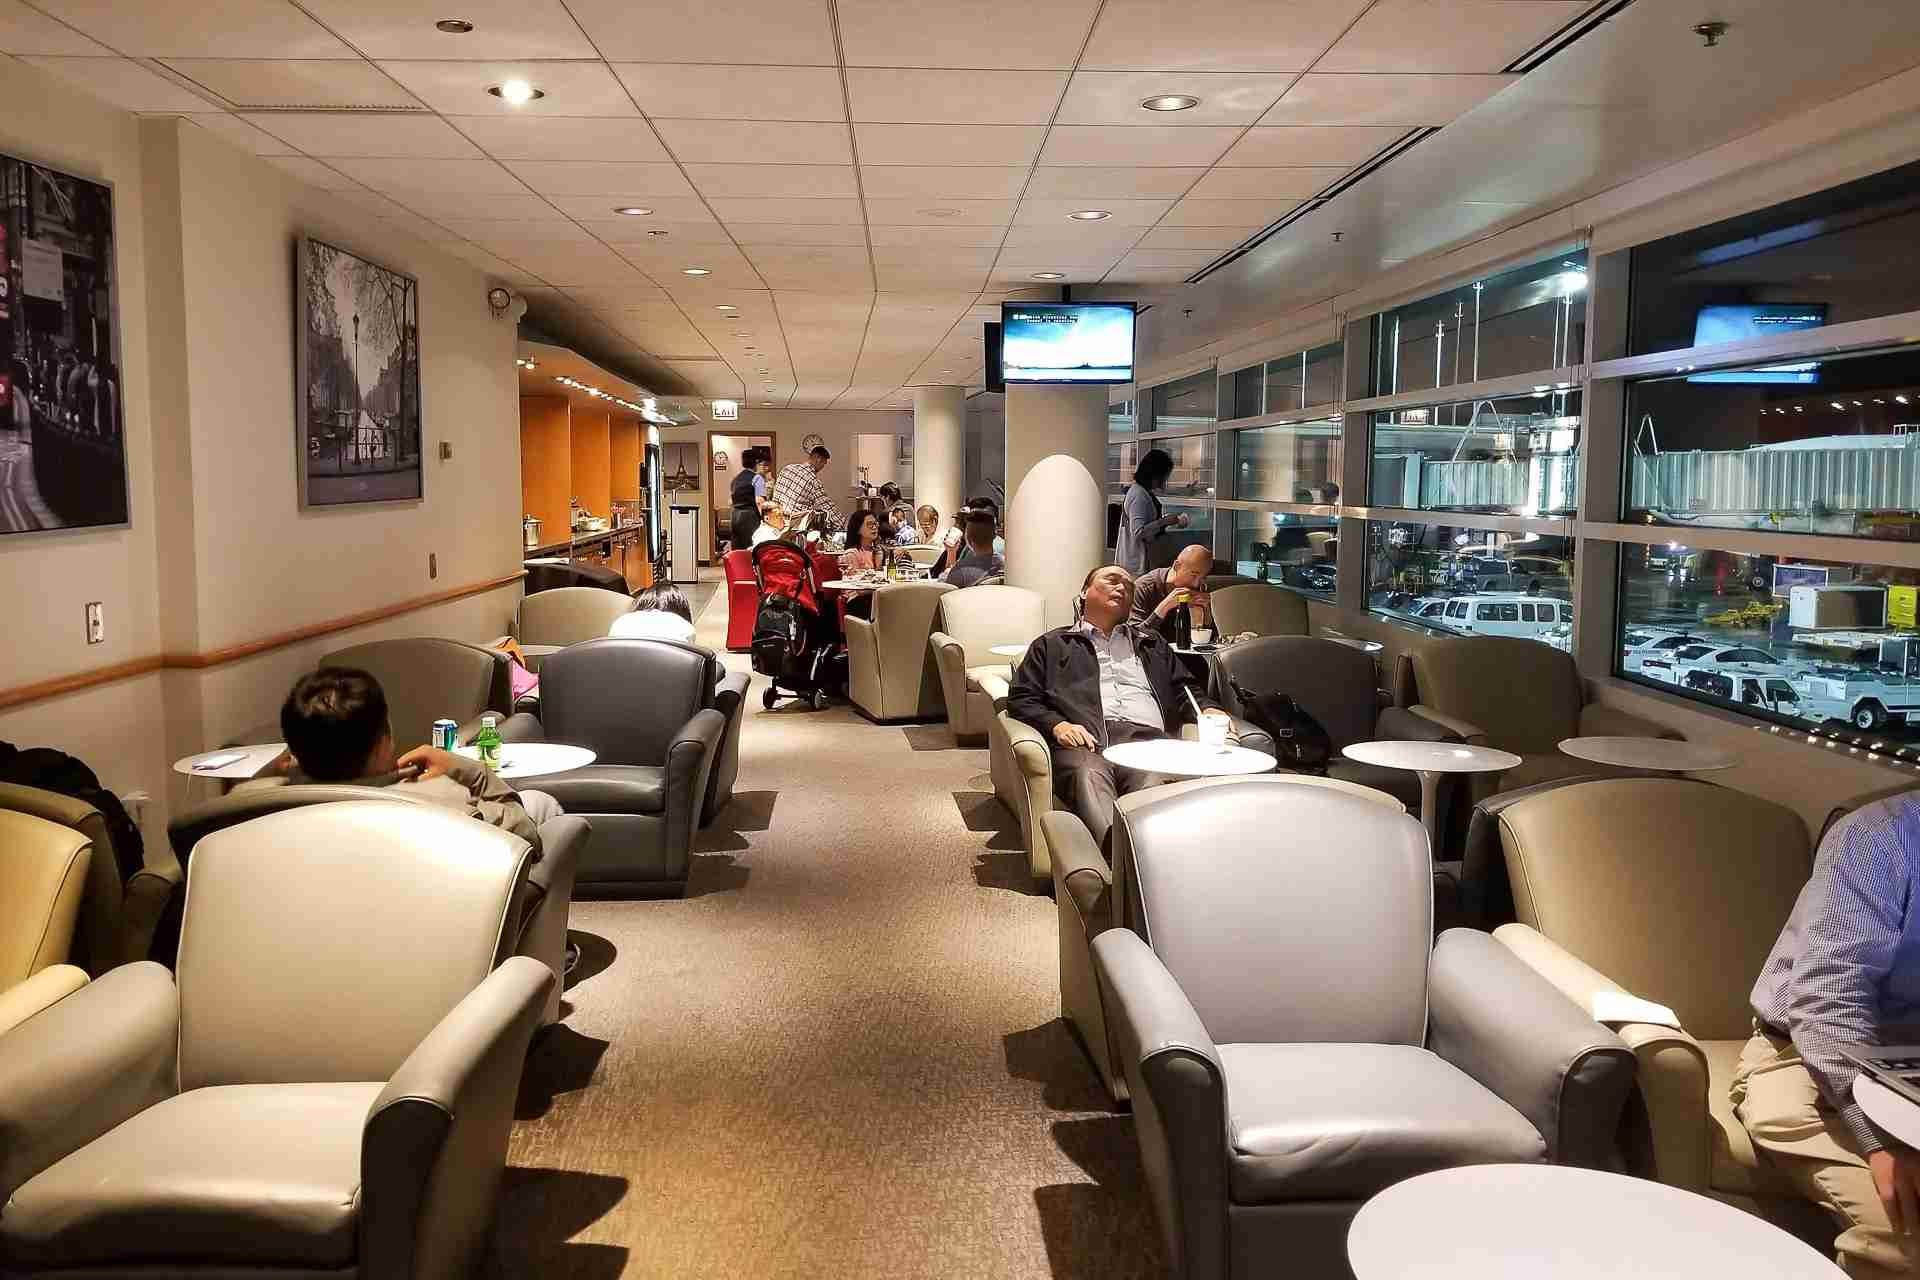 The KLM/Air France lounge isn